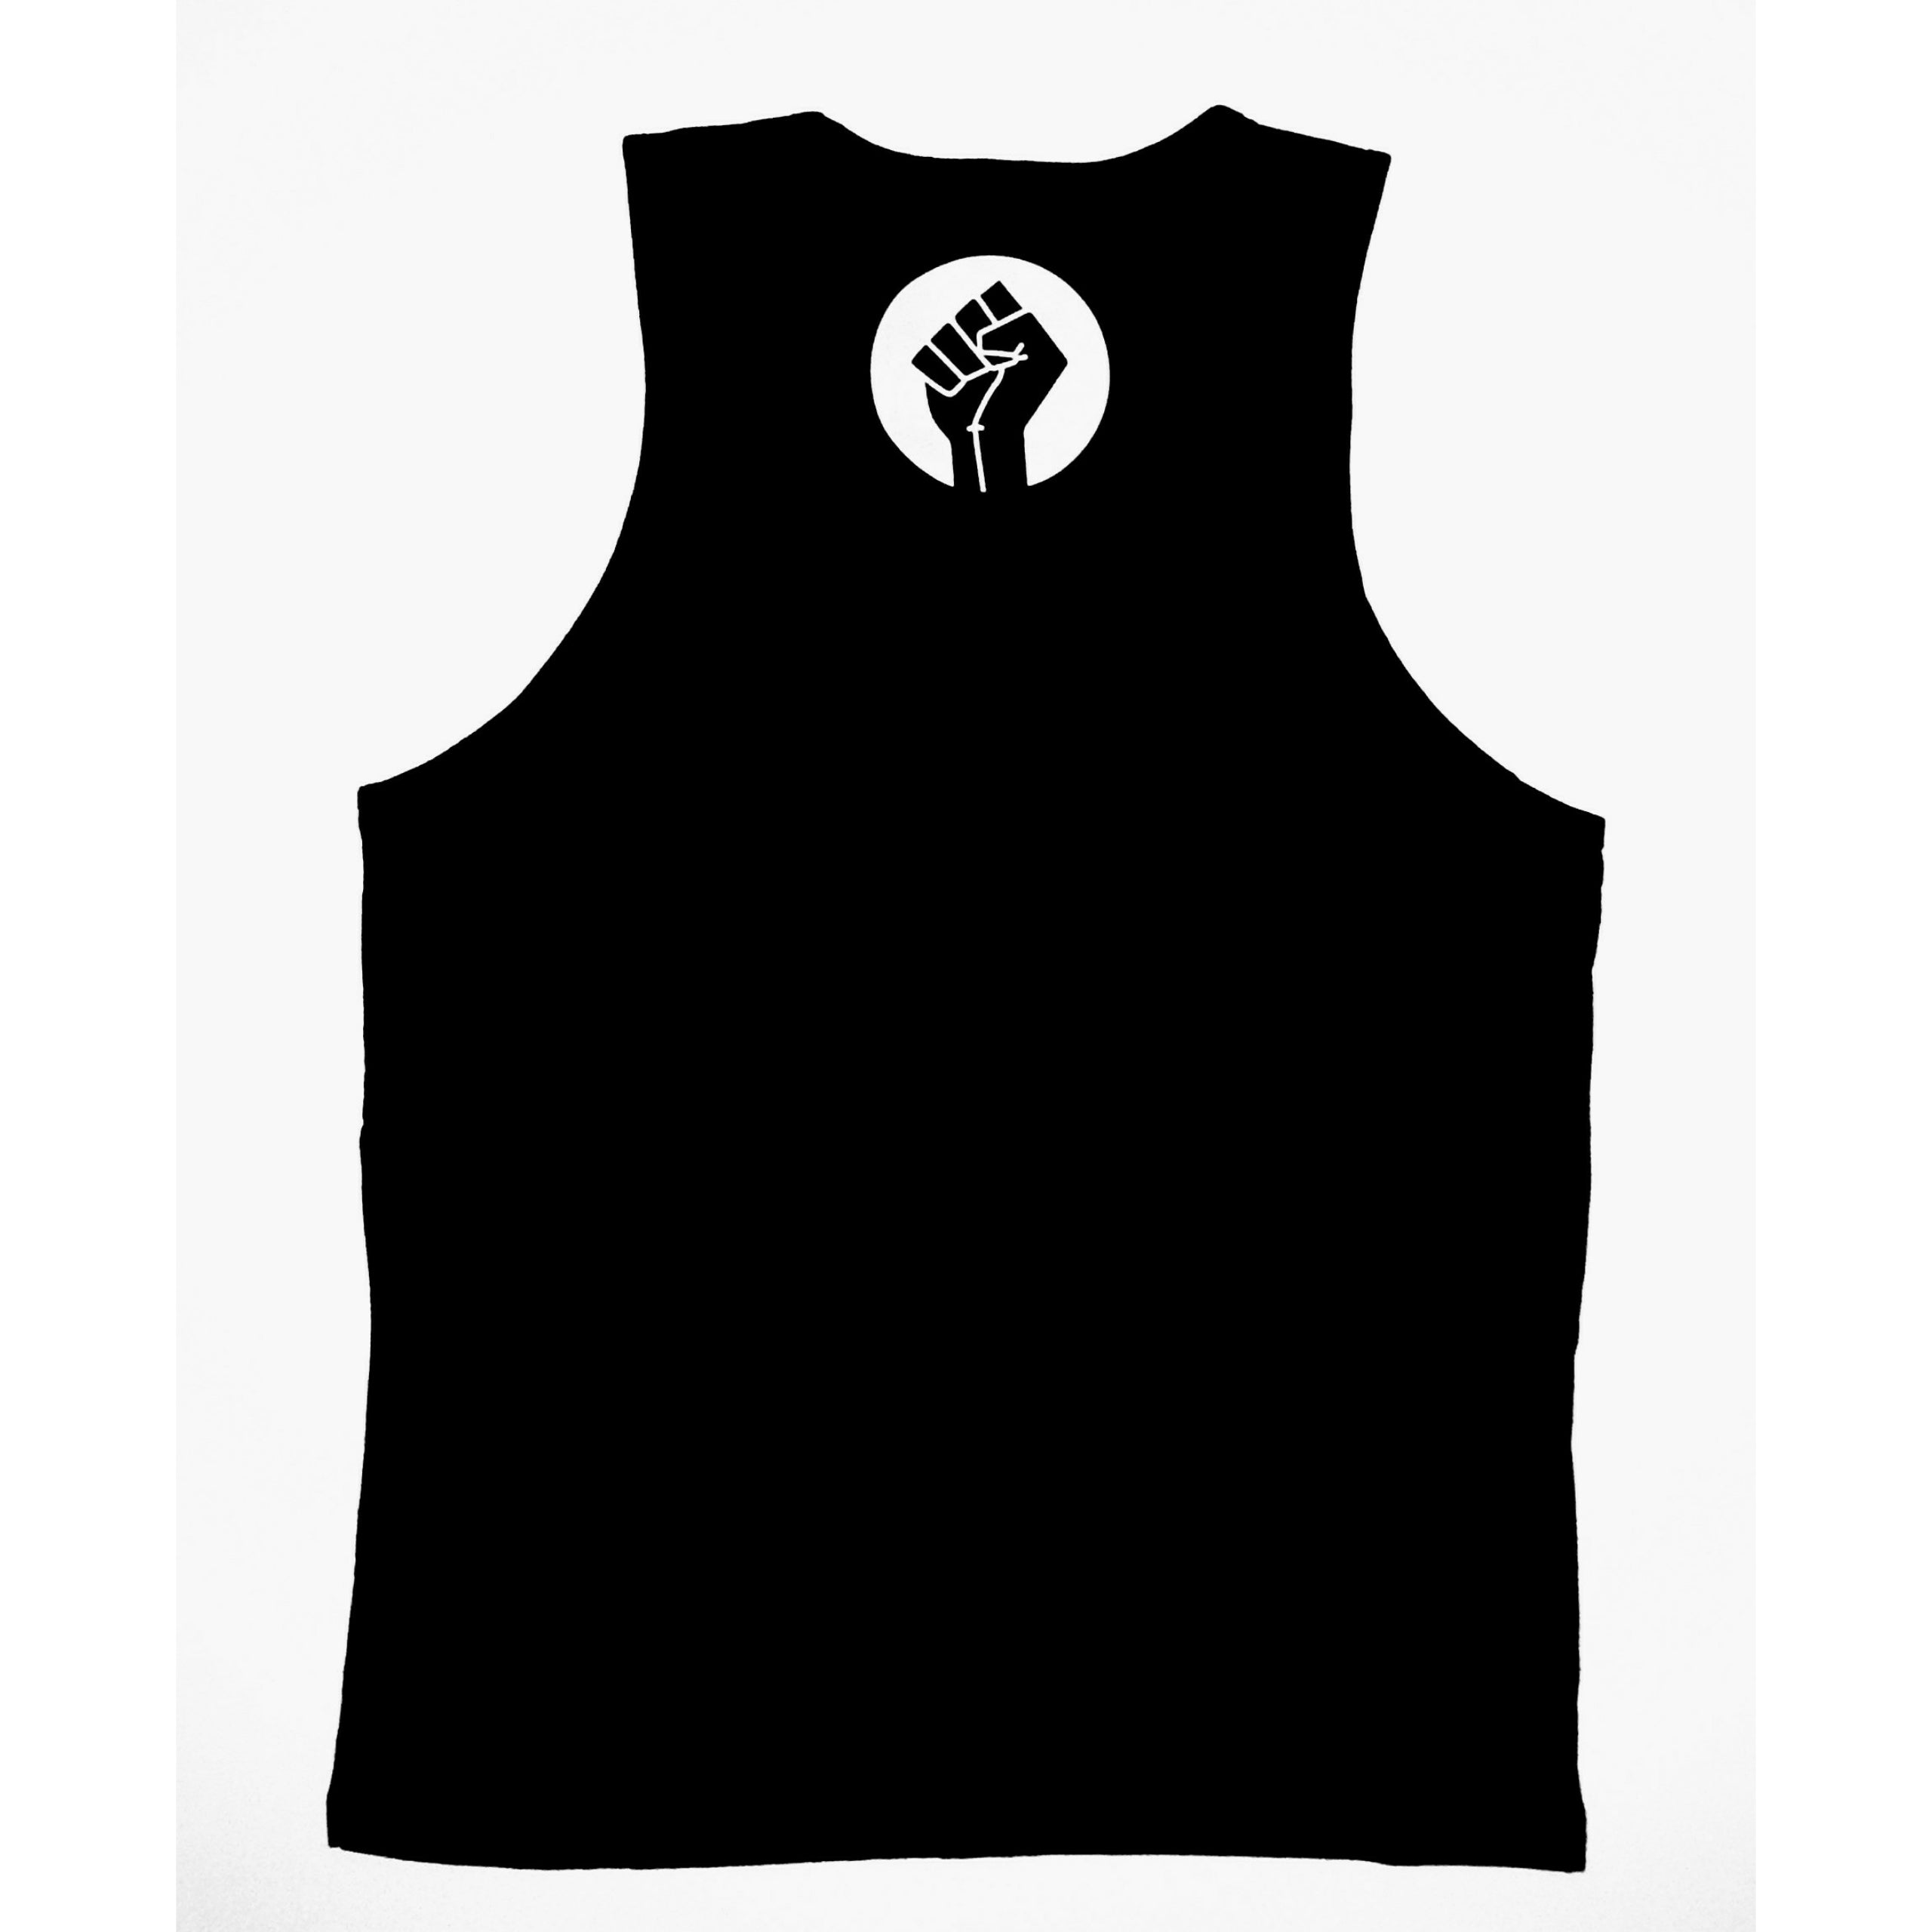 Hella Black. Hella Proud. Tank Top